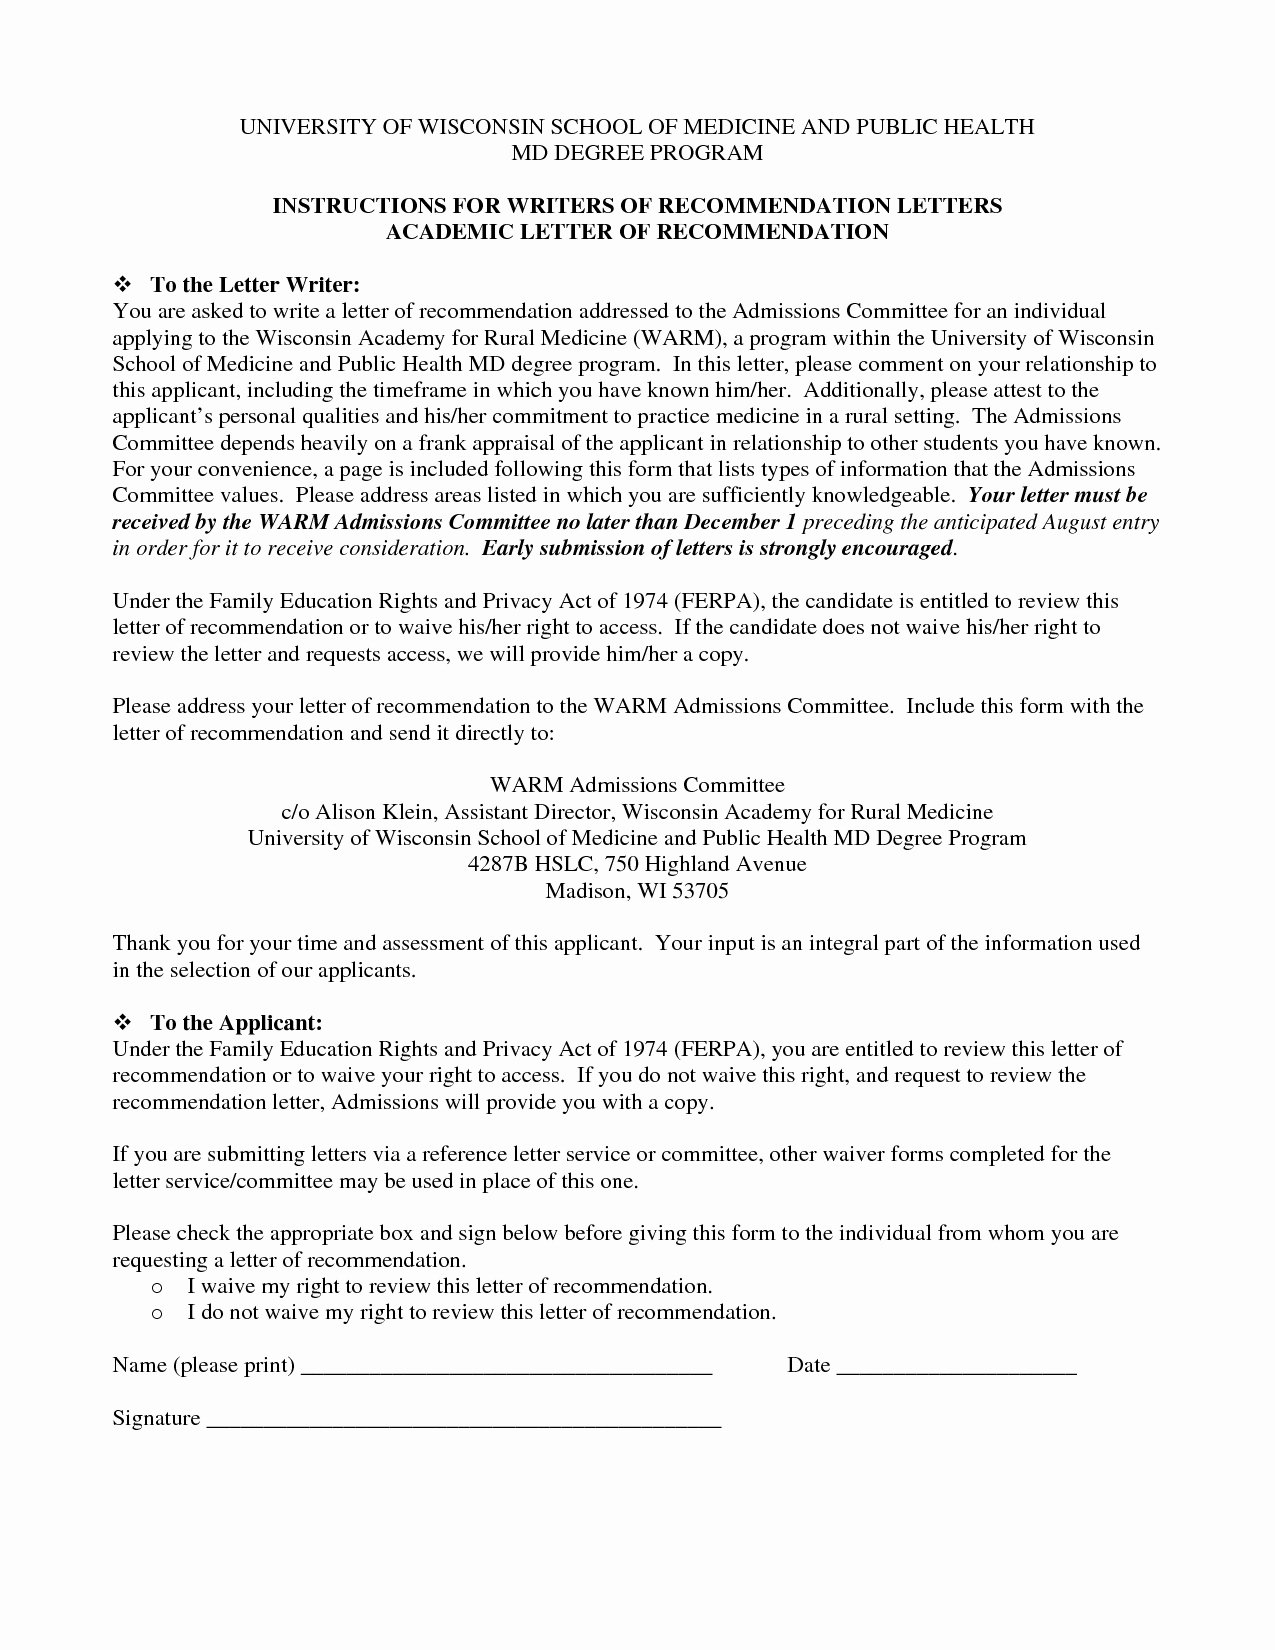 Med School Letter Of Recommendation Fresh Template for Letter Re Mendation for Medical School